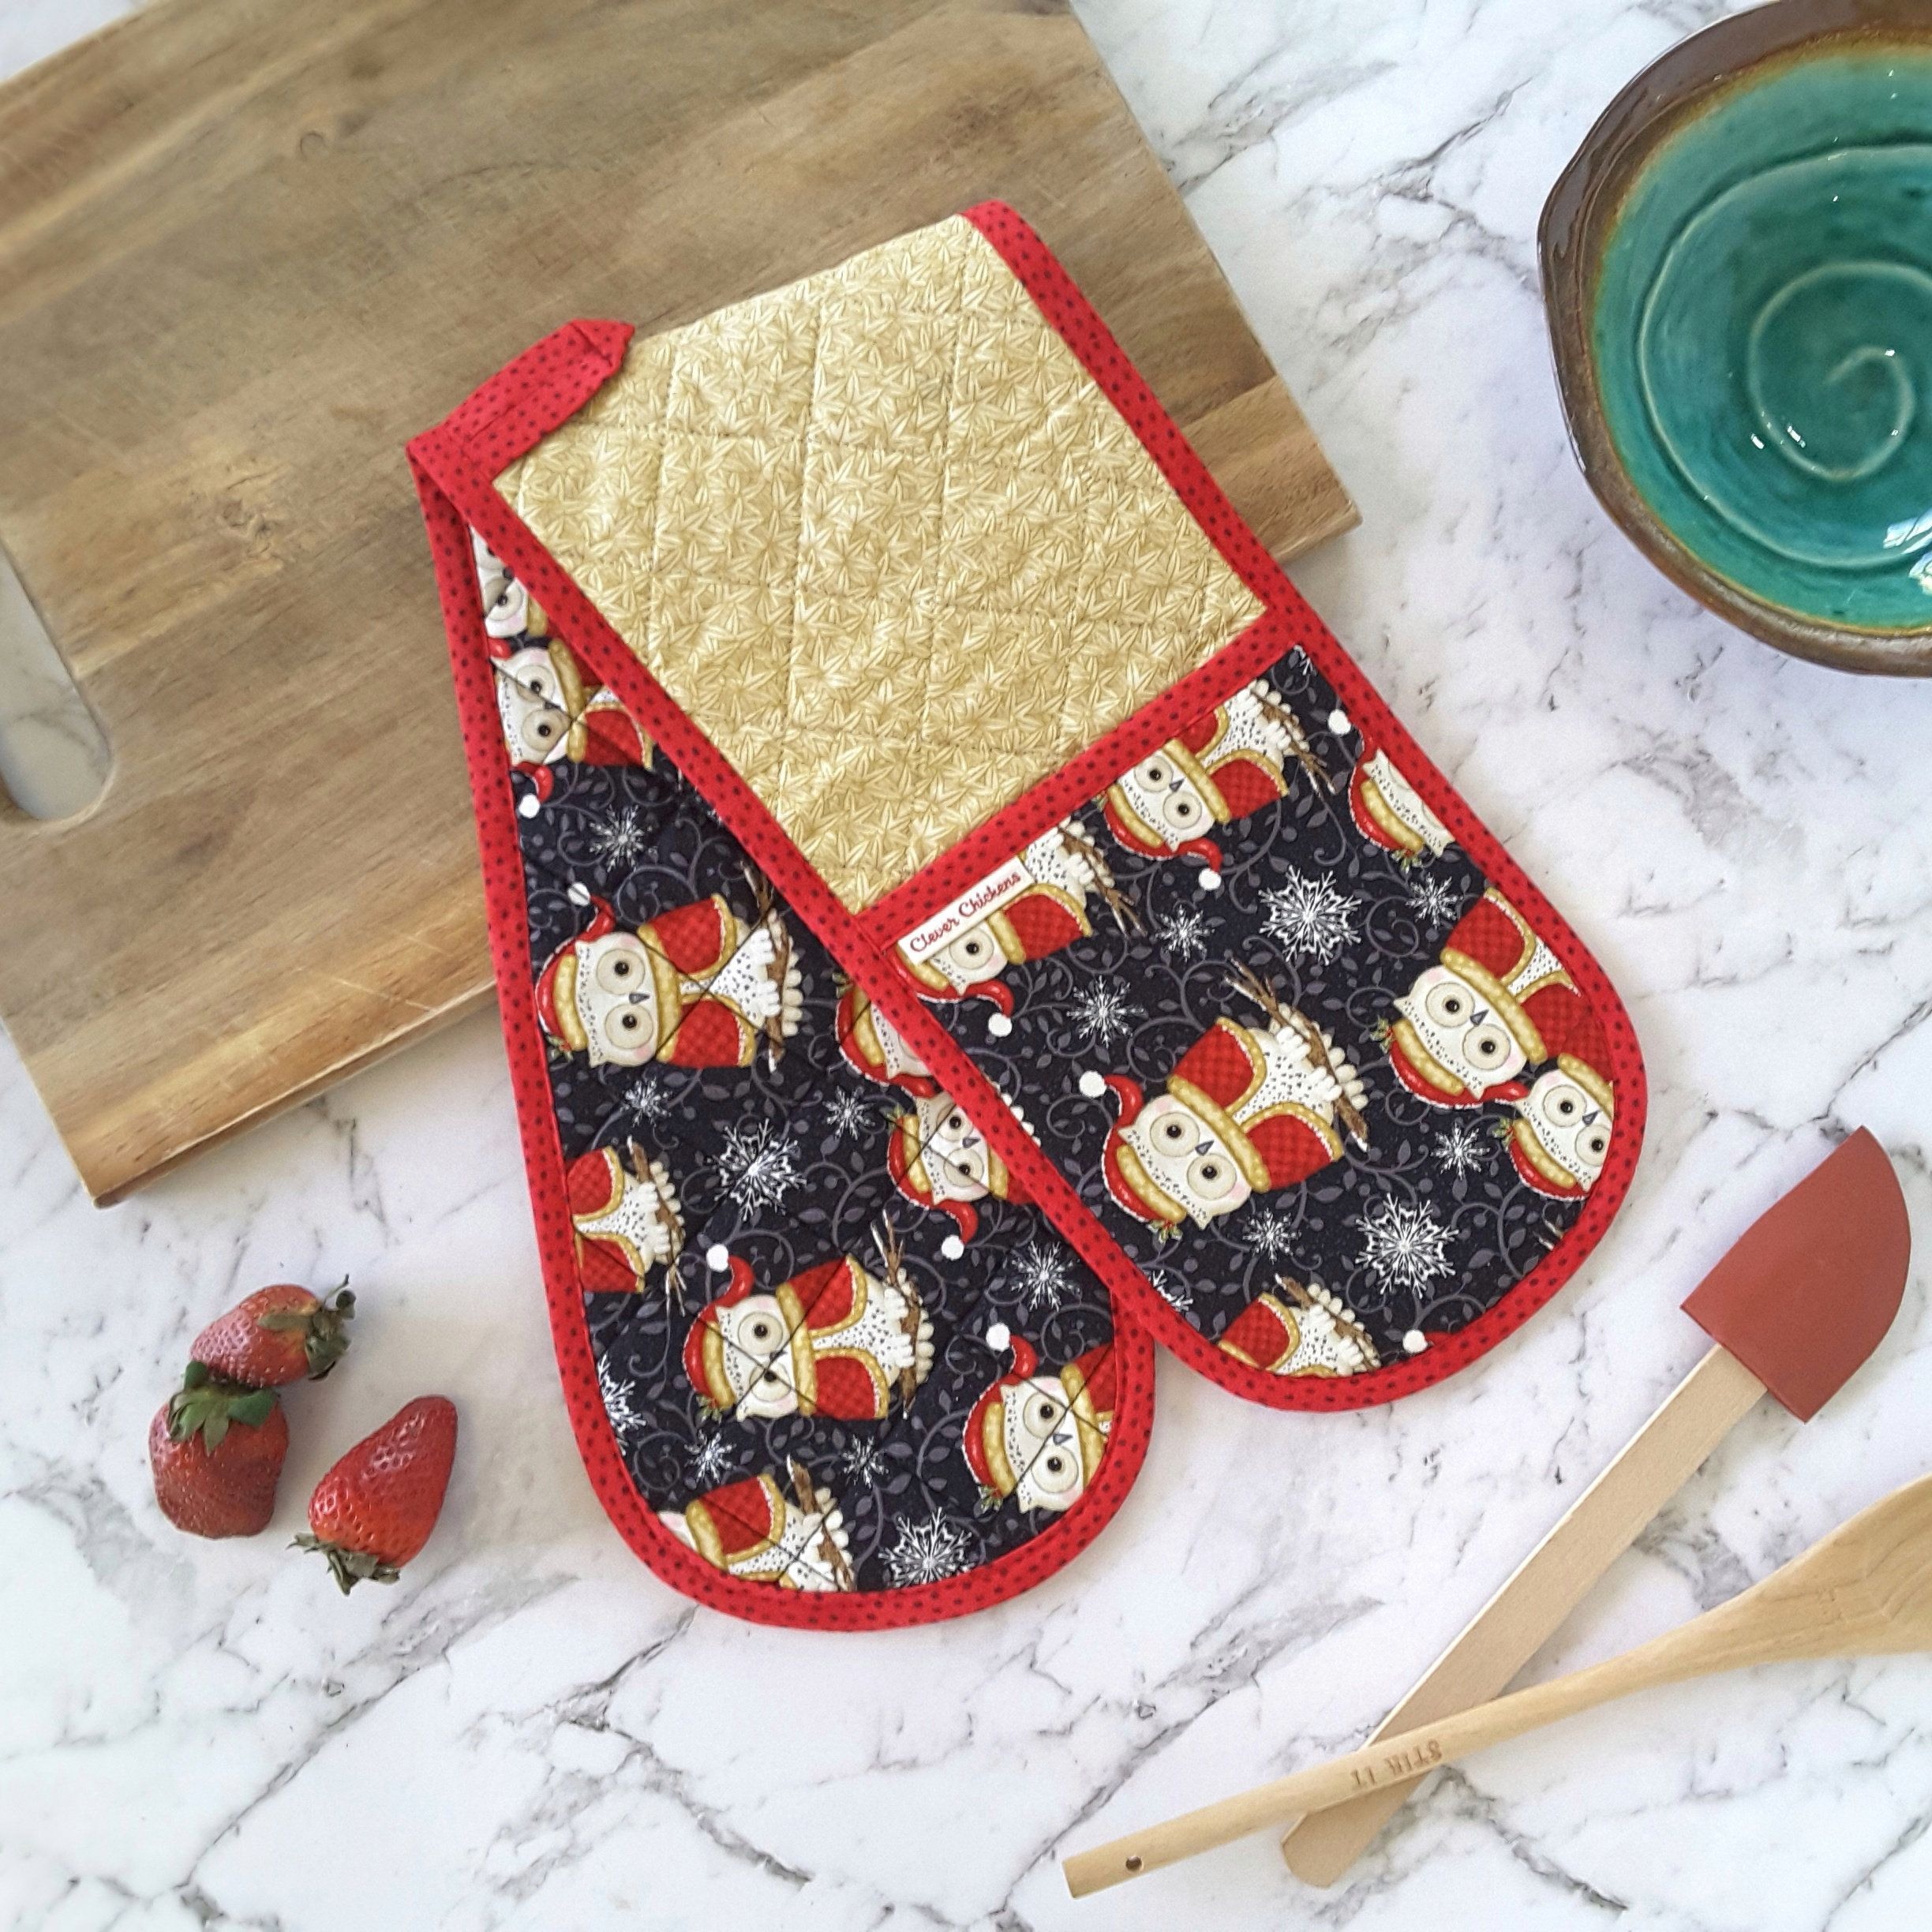 Christmas Owl Oven Glove Holiday Oven Mitt Double Potholders Black Beige Red Librarian Gifts Cute Owl Decor